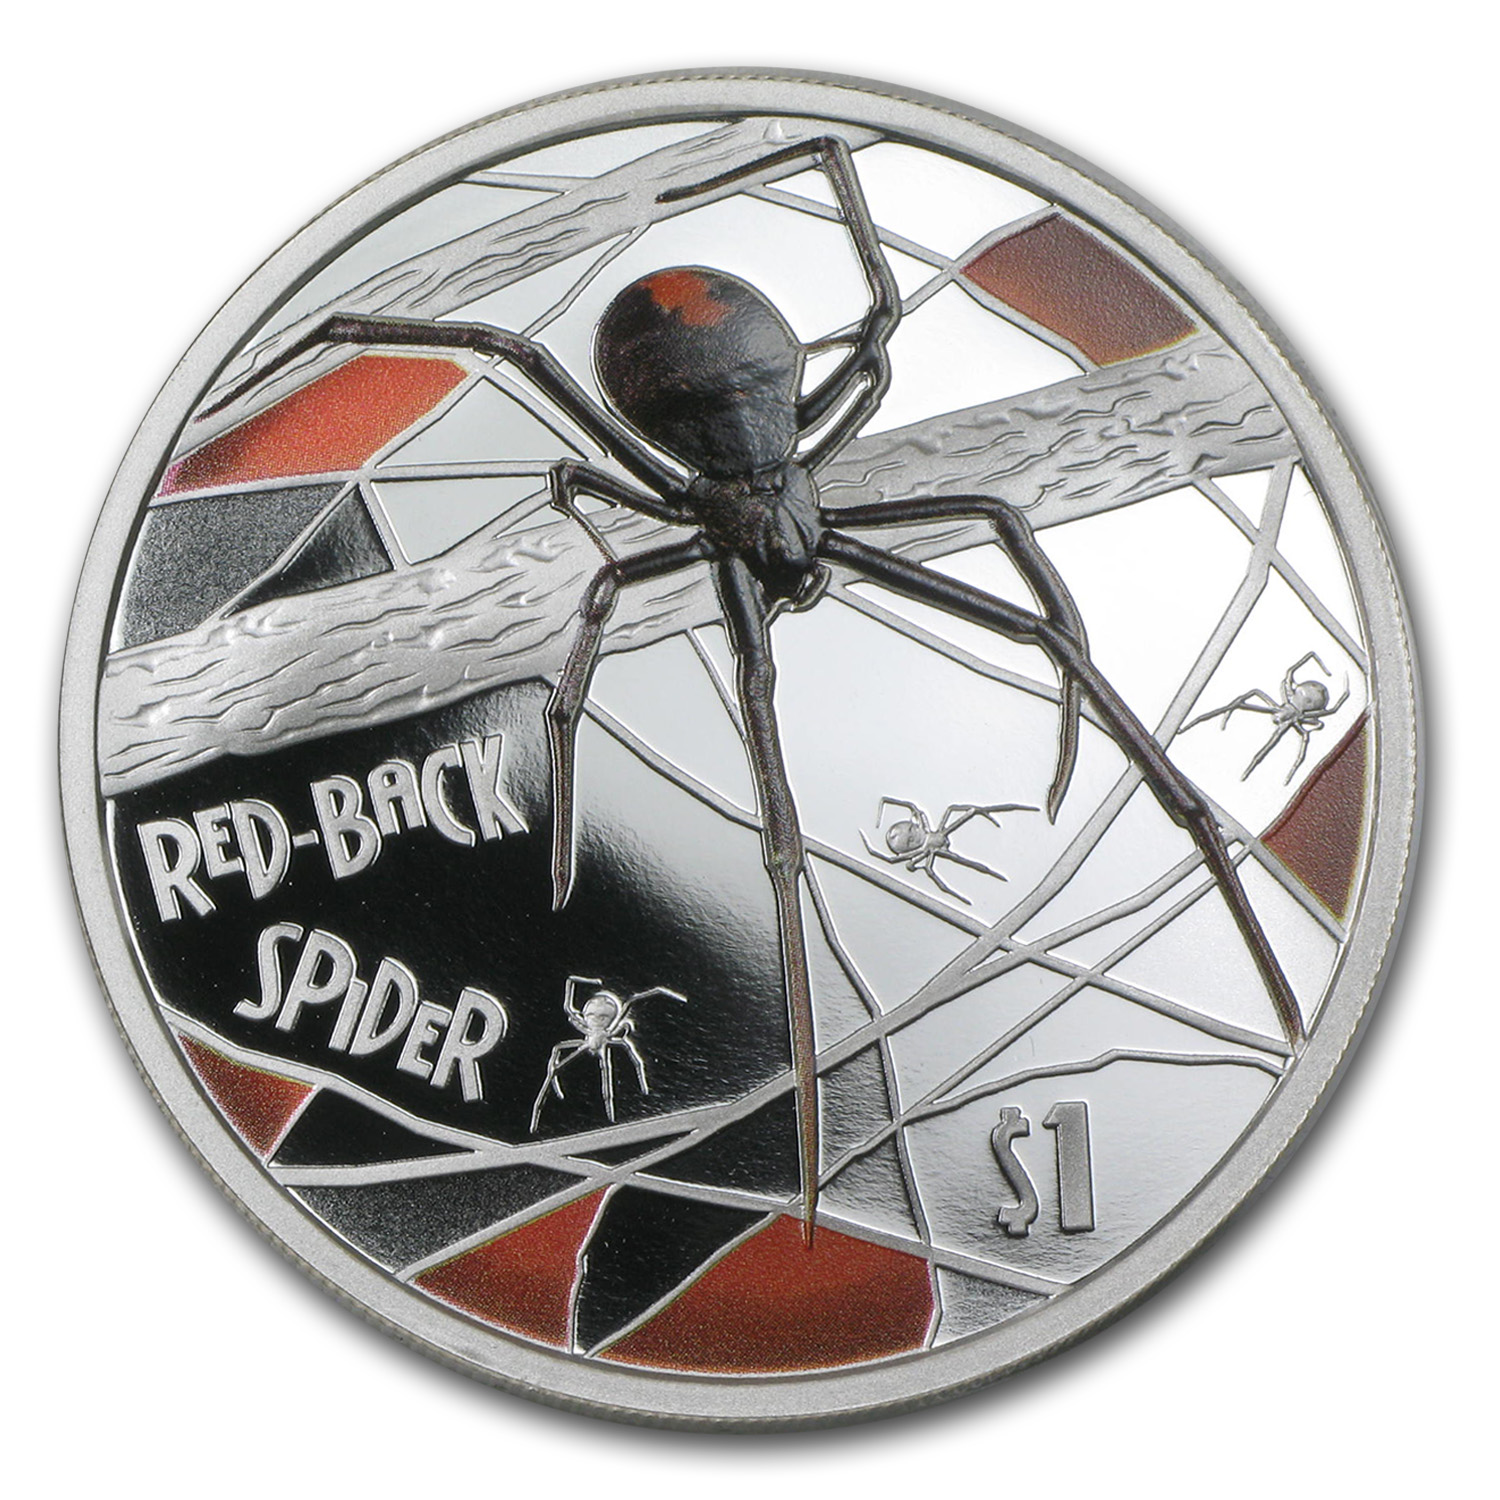 2006 Tuvalu 1 oz Silver Red-Back Spider Proof